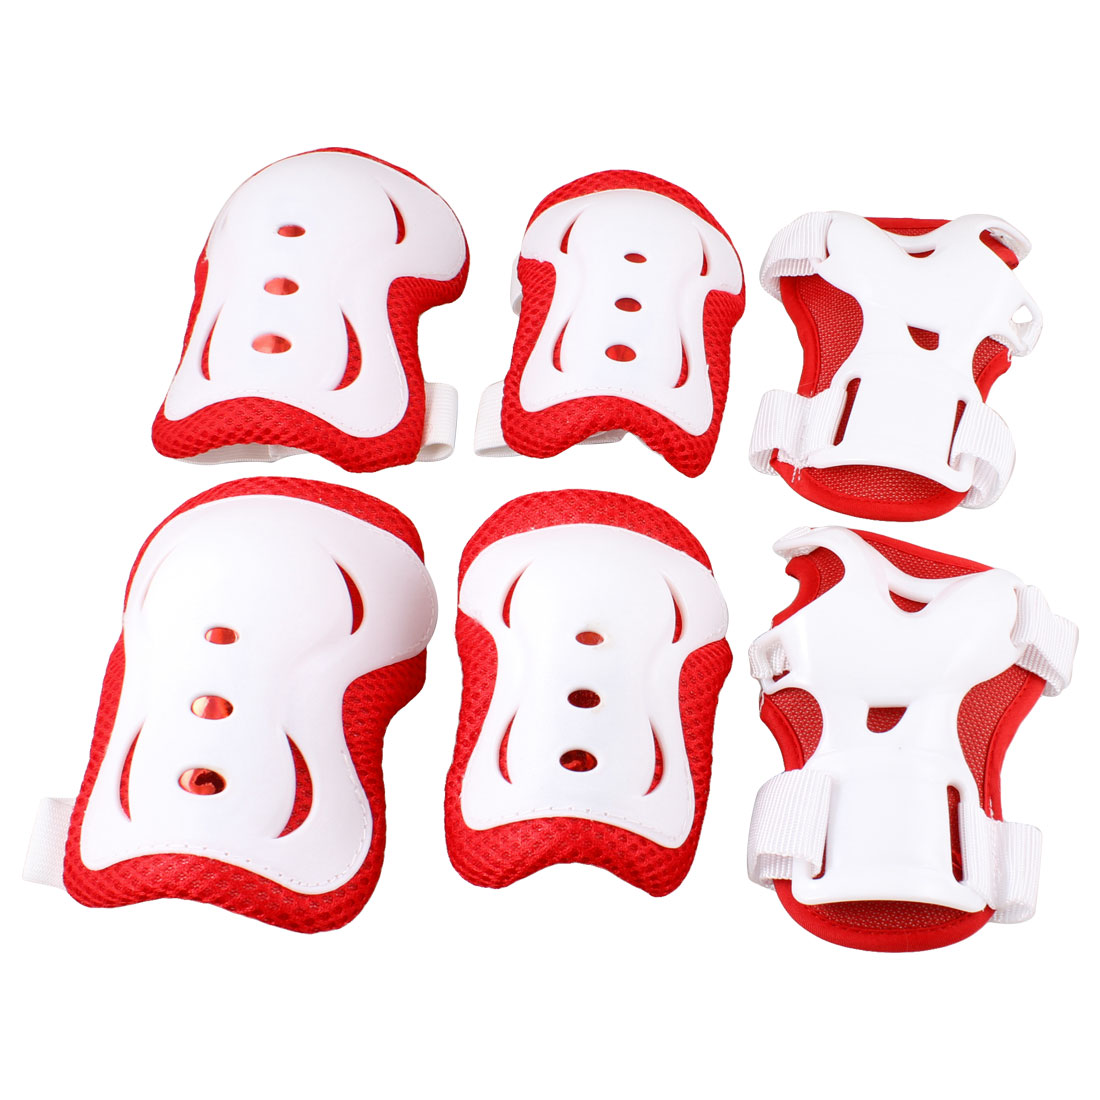 Children Skating Biking Red White Wrist Elbow Knee Pad Mat Protector 3 Pairs